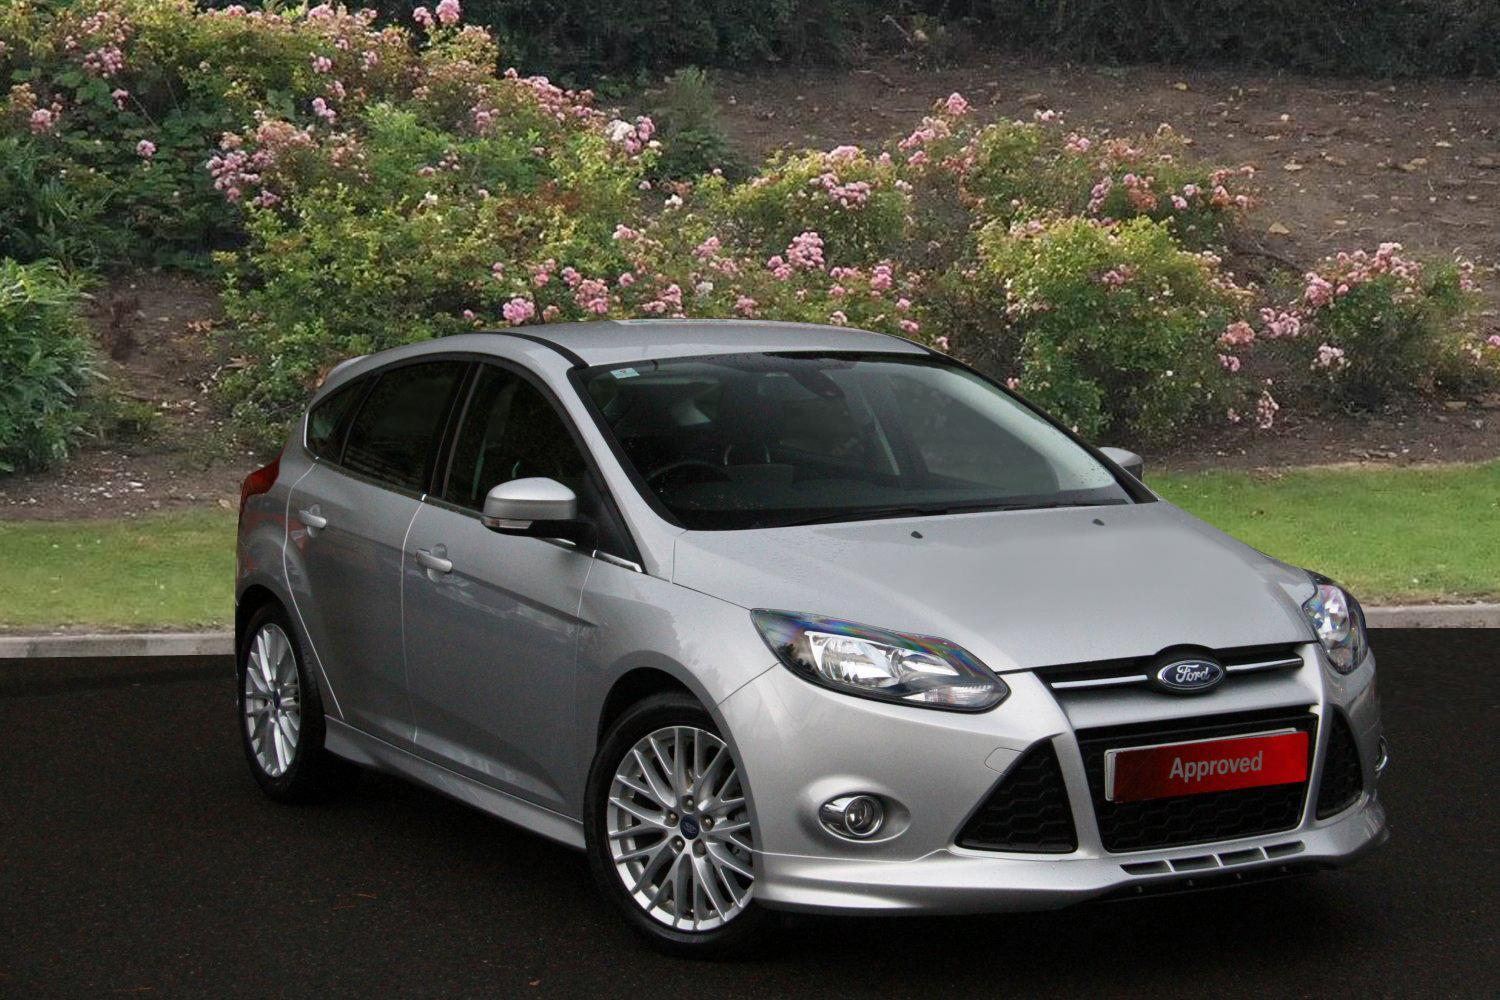 used ford focus 1 6 tdci 115 zetec s 5dr diesel hatchback for sale vertu honda. Black Bedroom Furniture Sets. Home Design Ideas